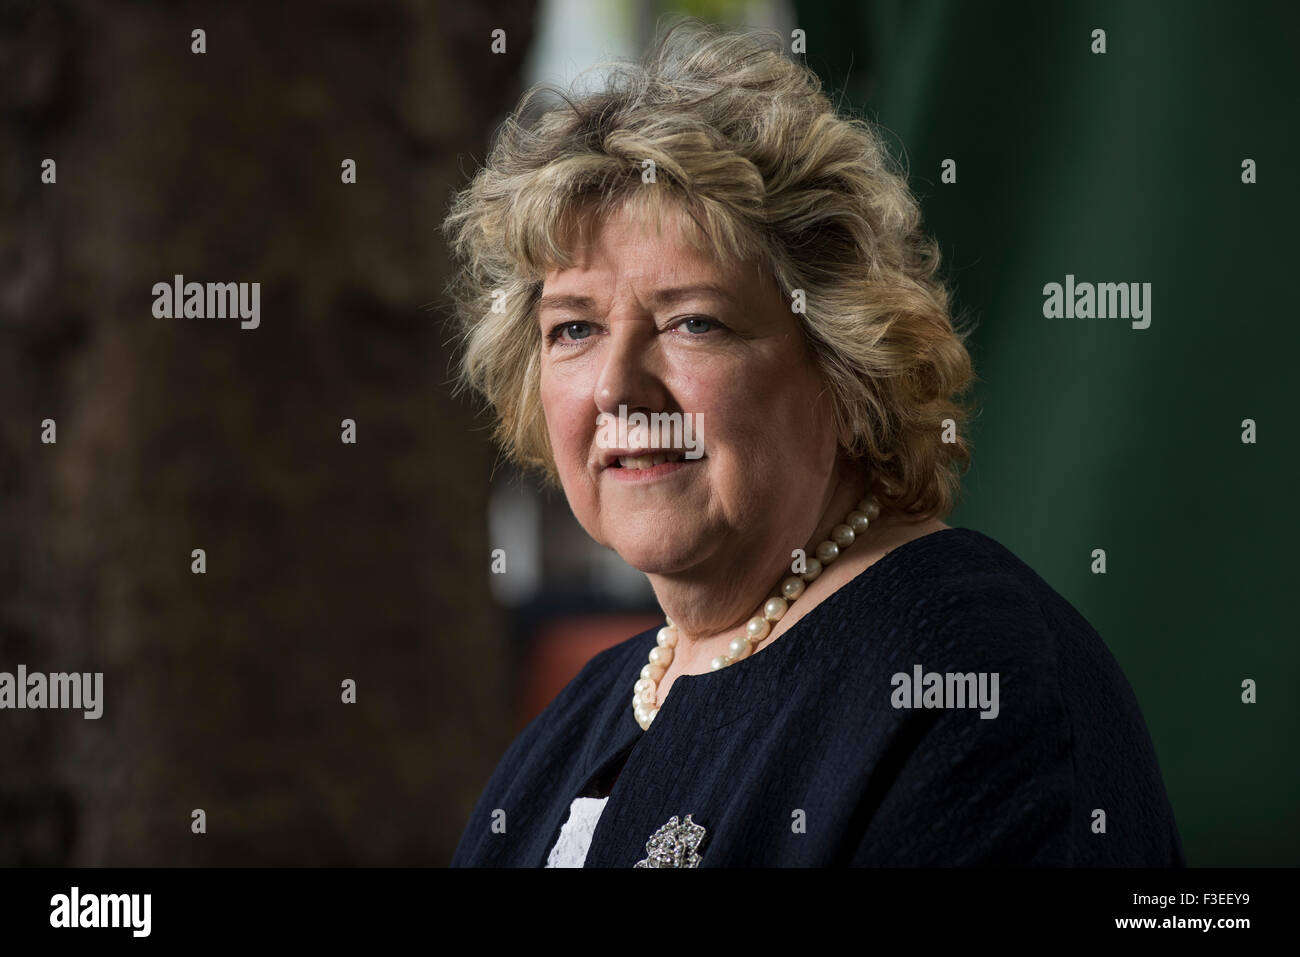 Professor at the University of Stirling, June Andrews. - Stock Image